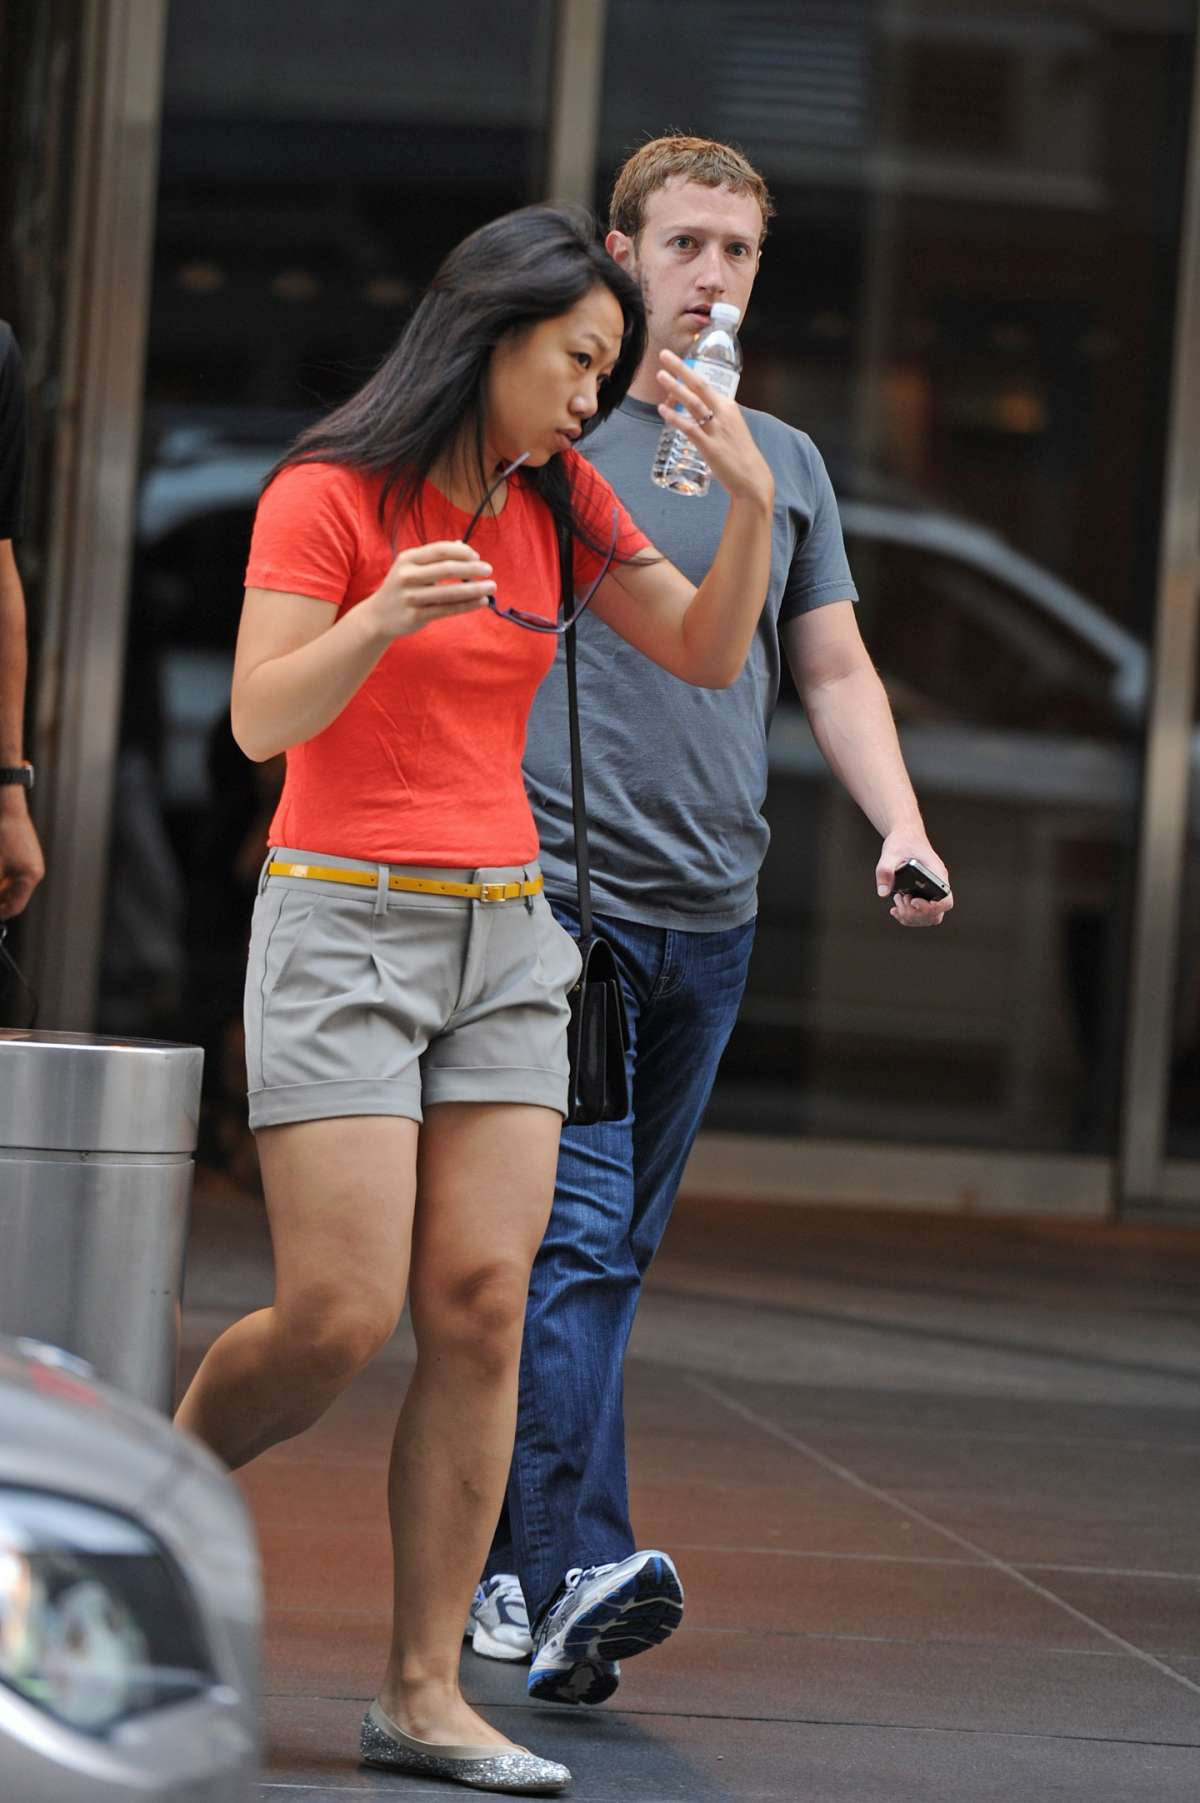 Mark Zuckenberg e Priscilla Chan a New York